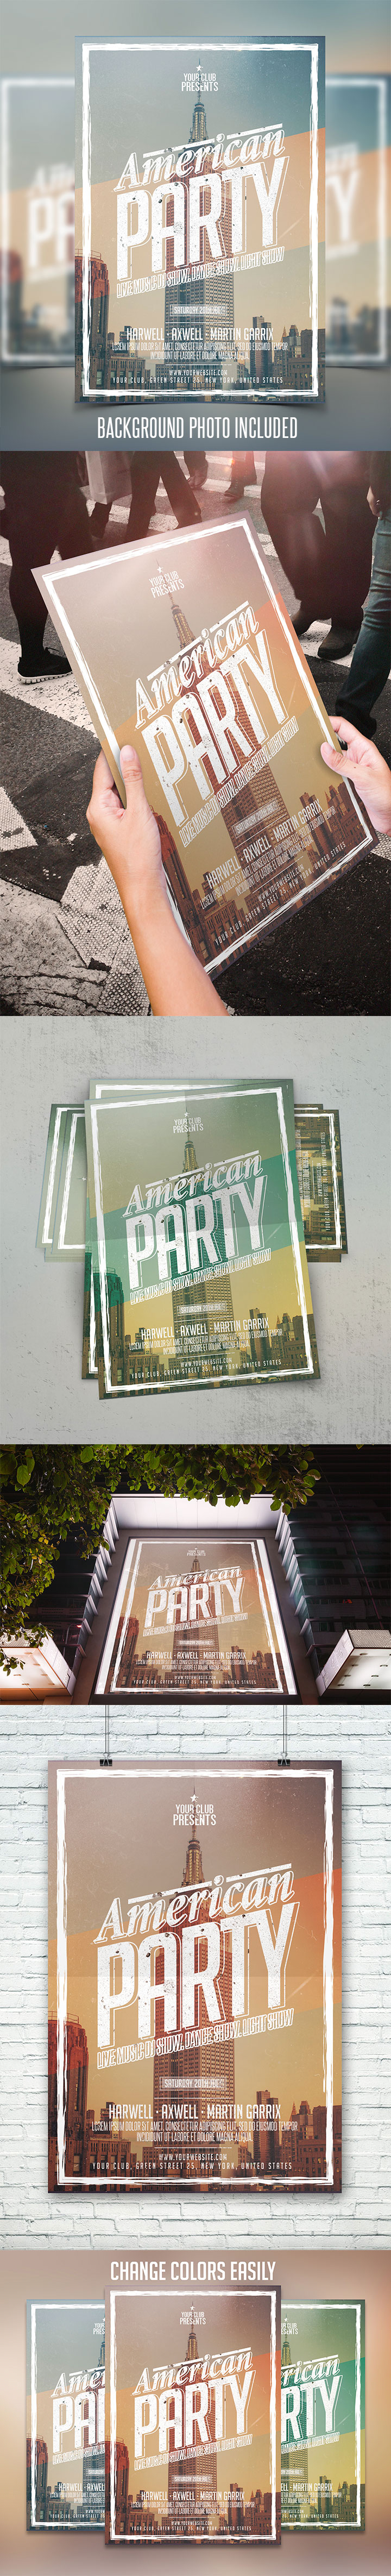 american party flyer psd